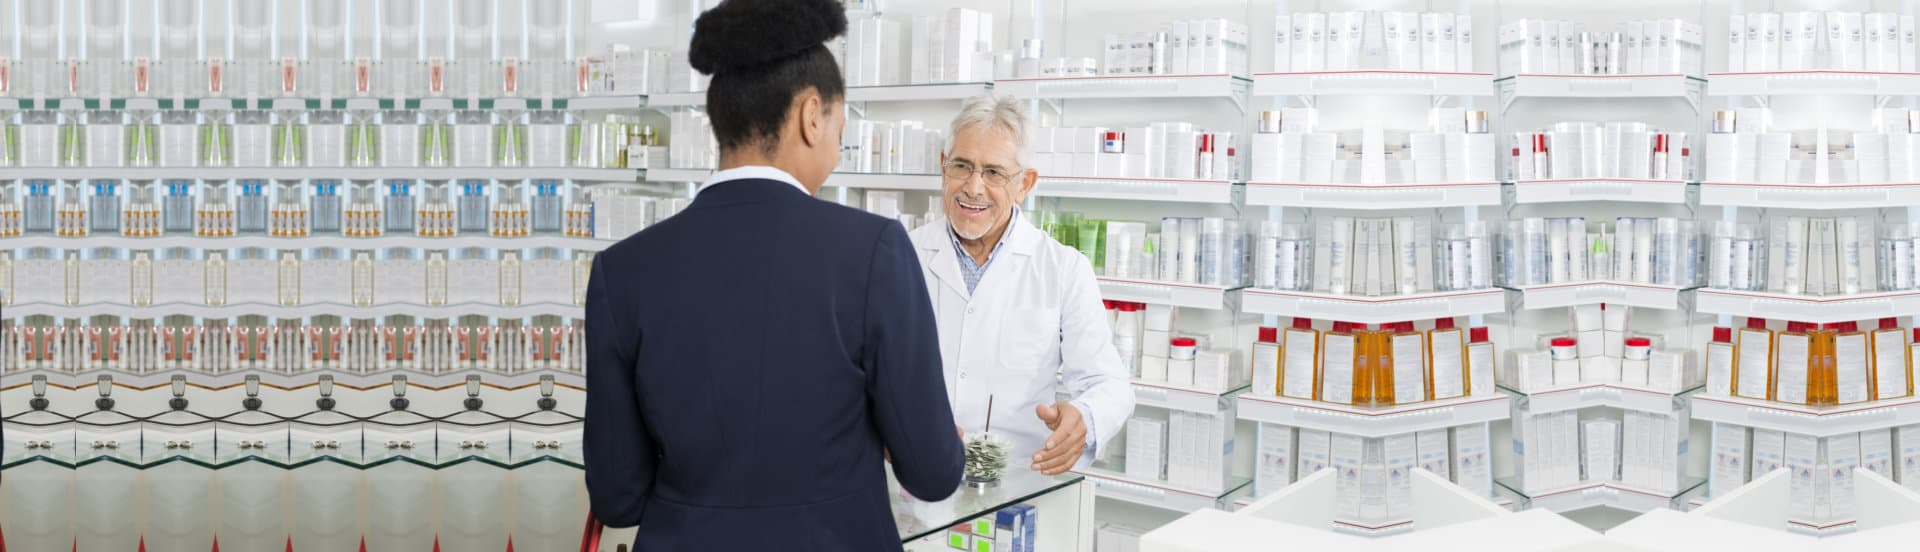 business woman talking to pharmacist